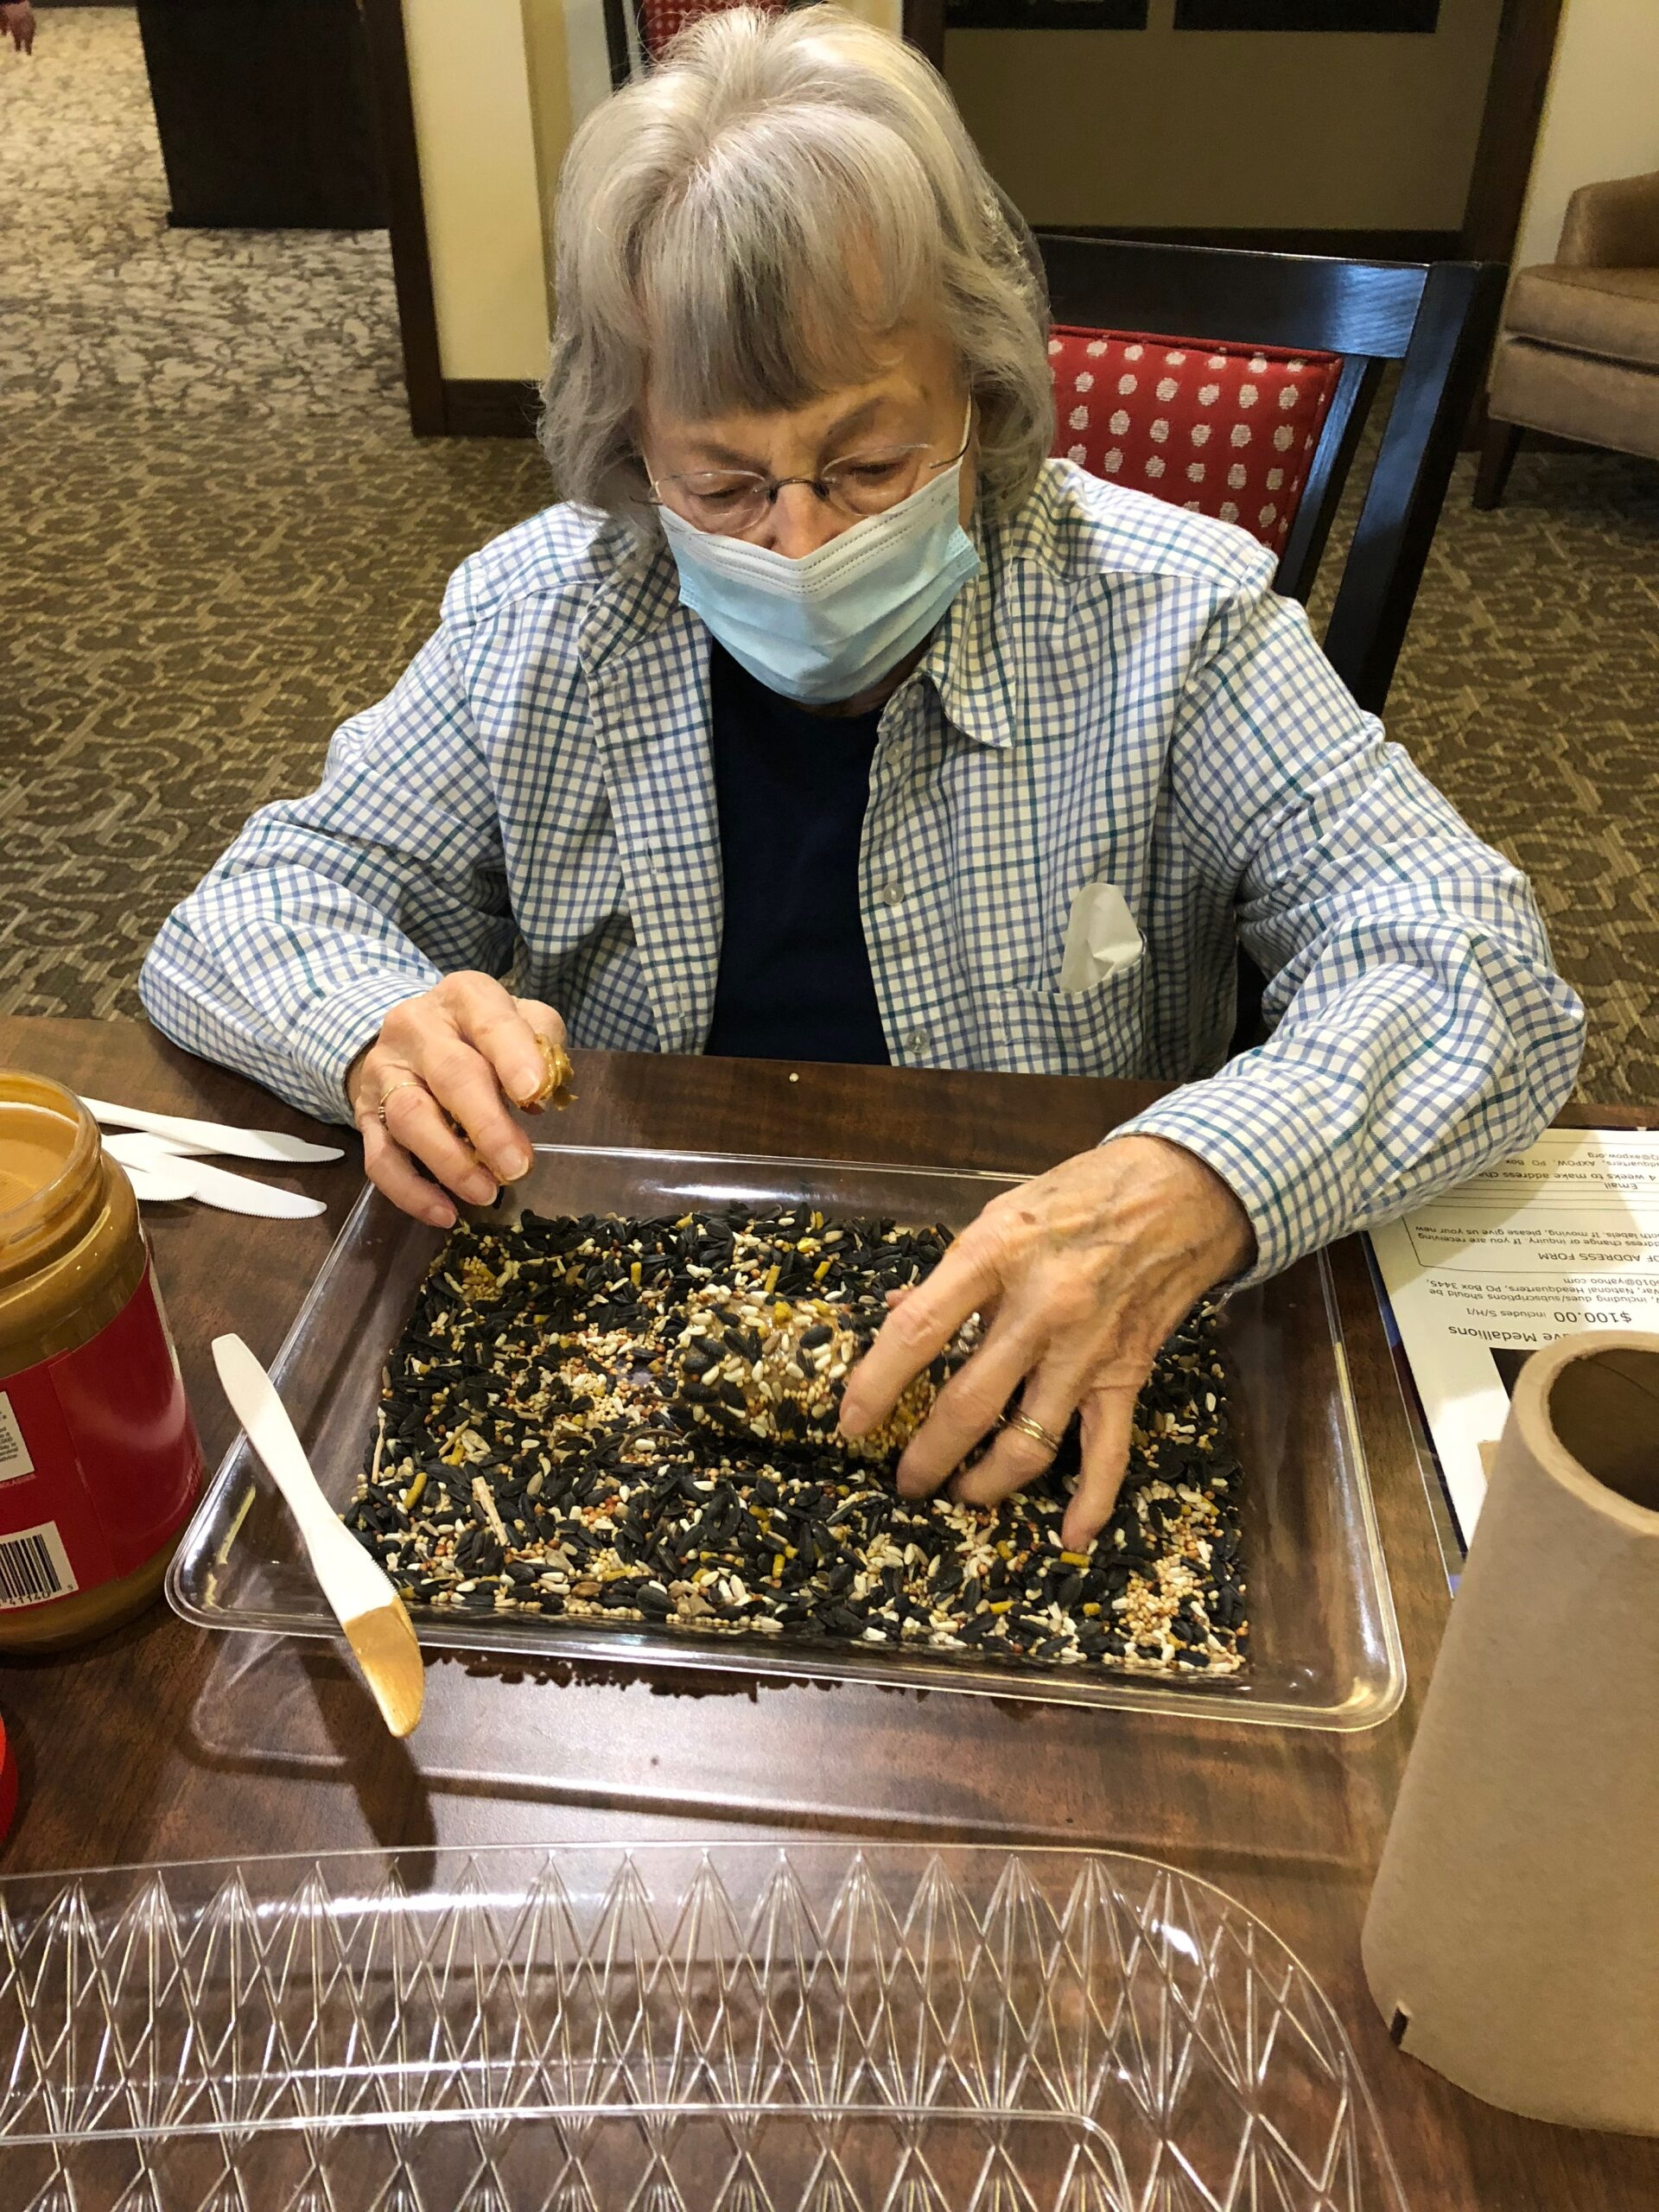 Bird Seed Feeder Craft Day- Jean had a blast getting her hands messy while creating peanut butter and bird seed feeders for our Primrose Birds to enjoy!